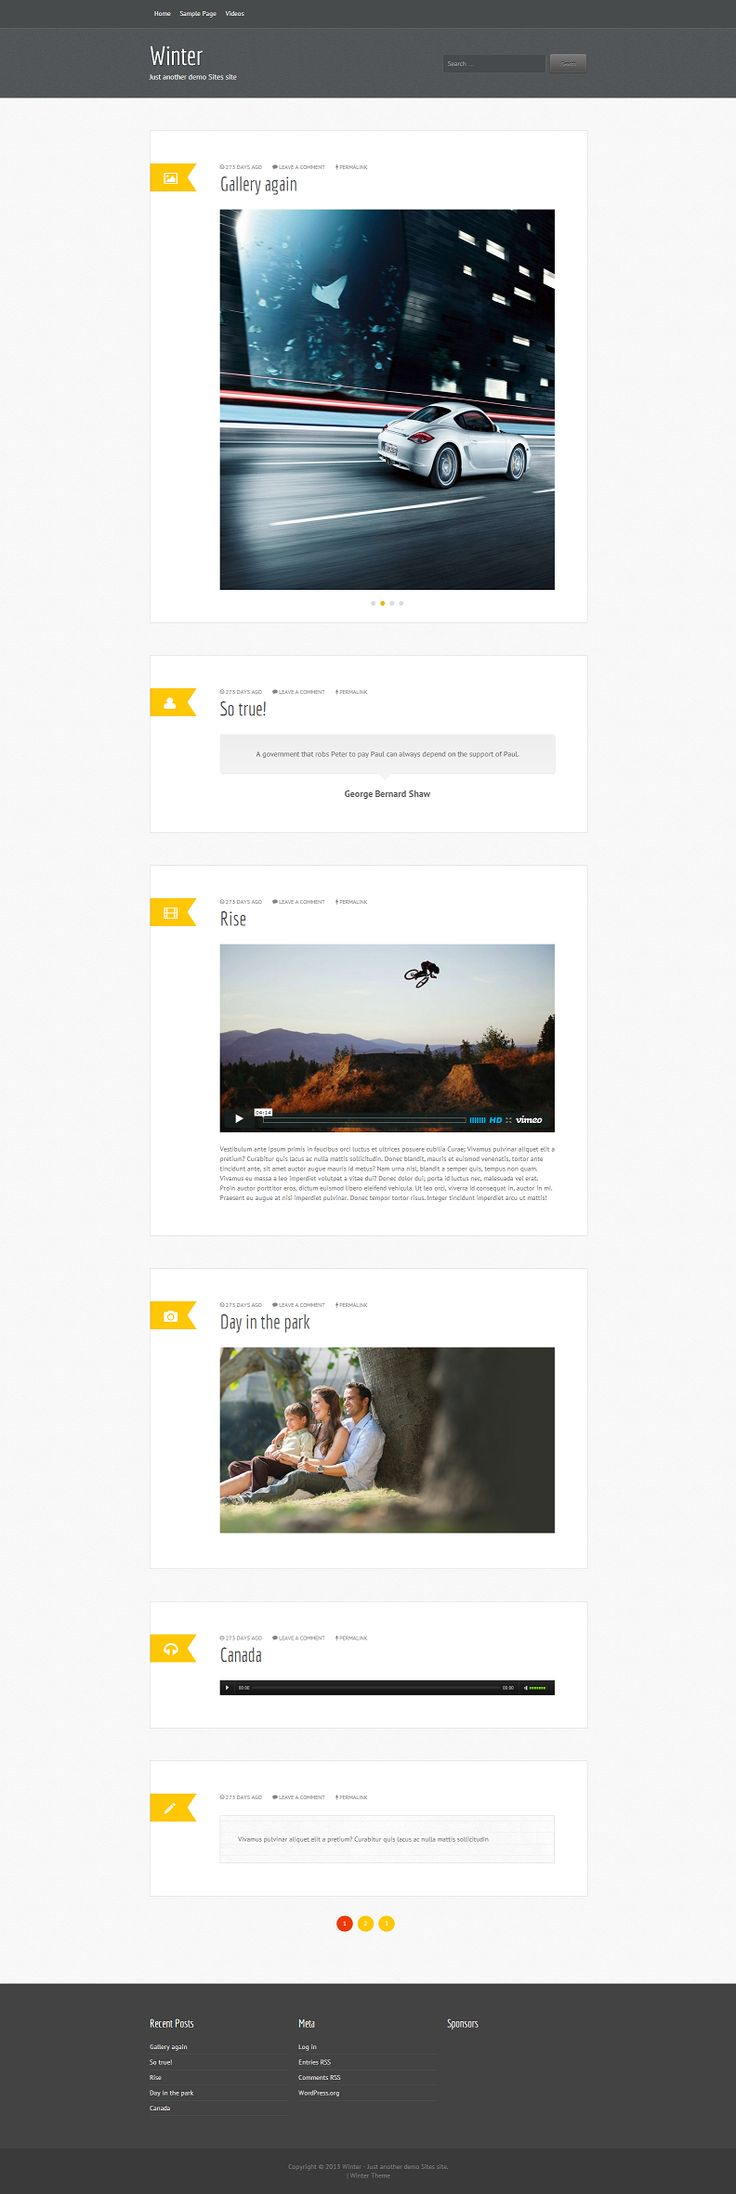 Winter is a single column free premium tumblog WordPress theme. This is a WordPress 3+ ready theme with features like custom menu, featured images, Metabox, widgetized footer, and tumblog feature using the WordPress post formats. Winter theme supports Audio, Video, Image, Link, Chat, Quote, Aside, Gallery and Standard post formats. http://www.fabthemes.com/winter/